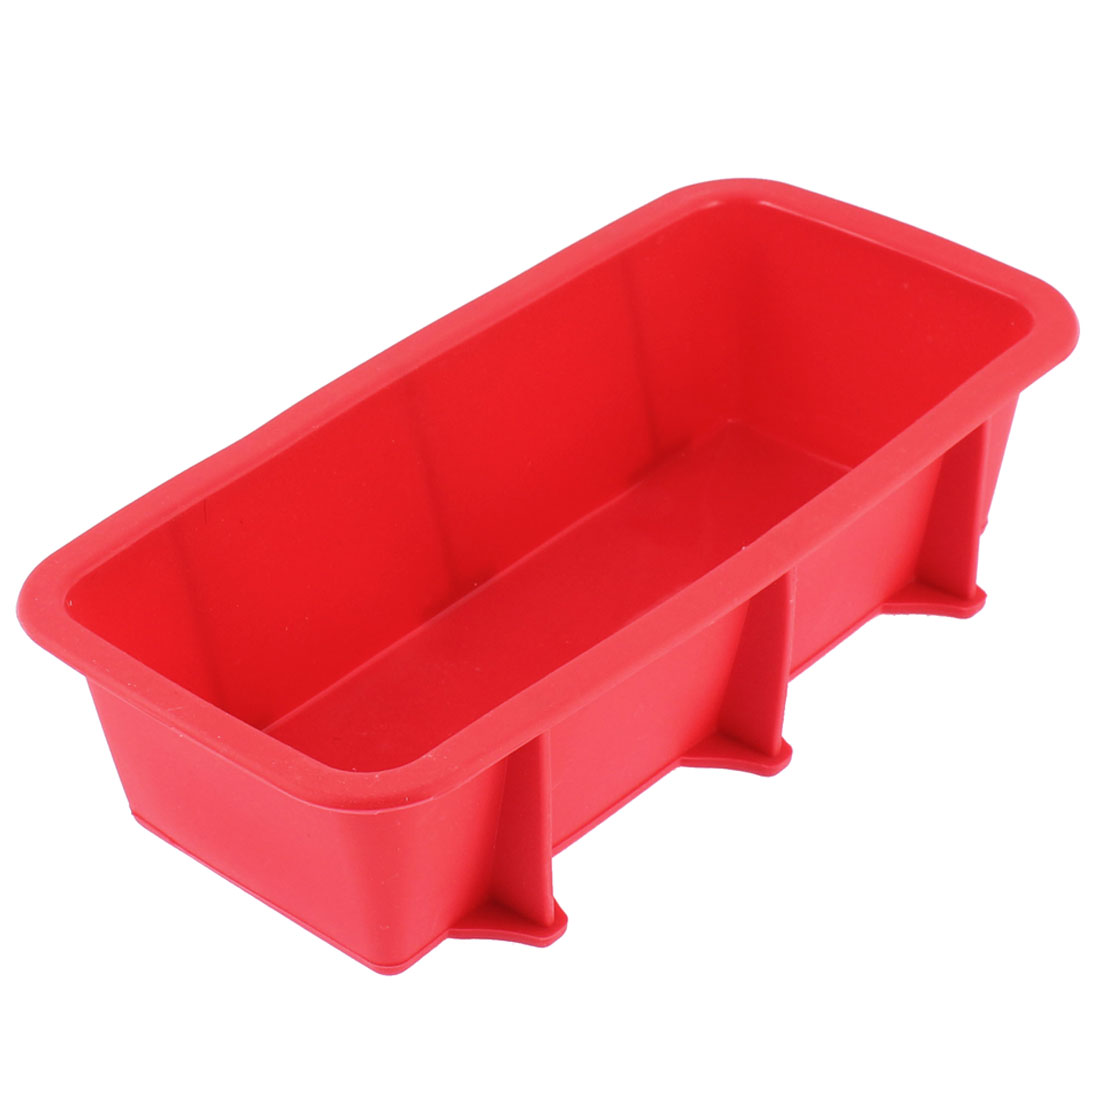 Silicone Flat Bottom Toast Bread Baking Mold Mould Pan Maker Red 25 x 12.5cm